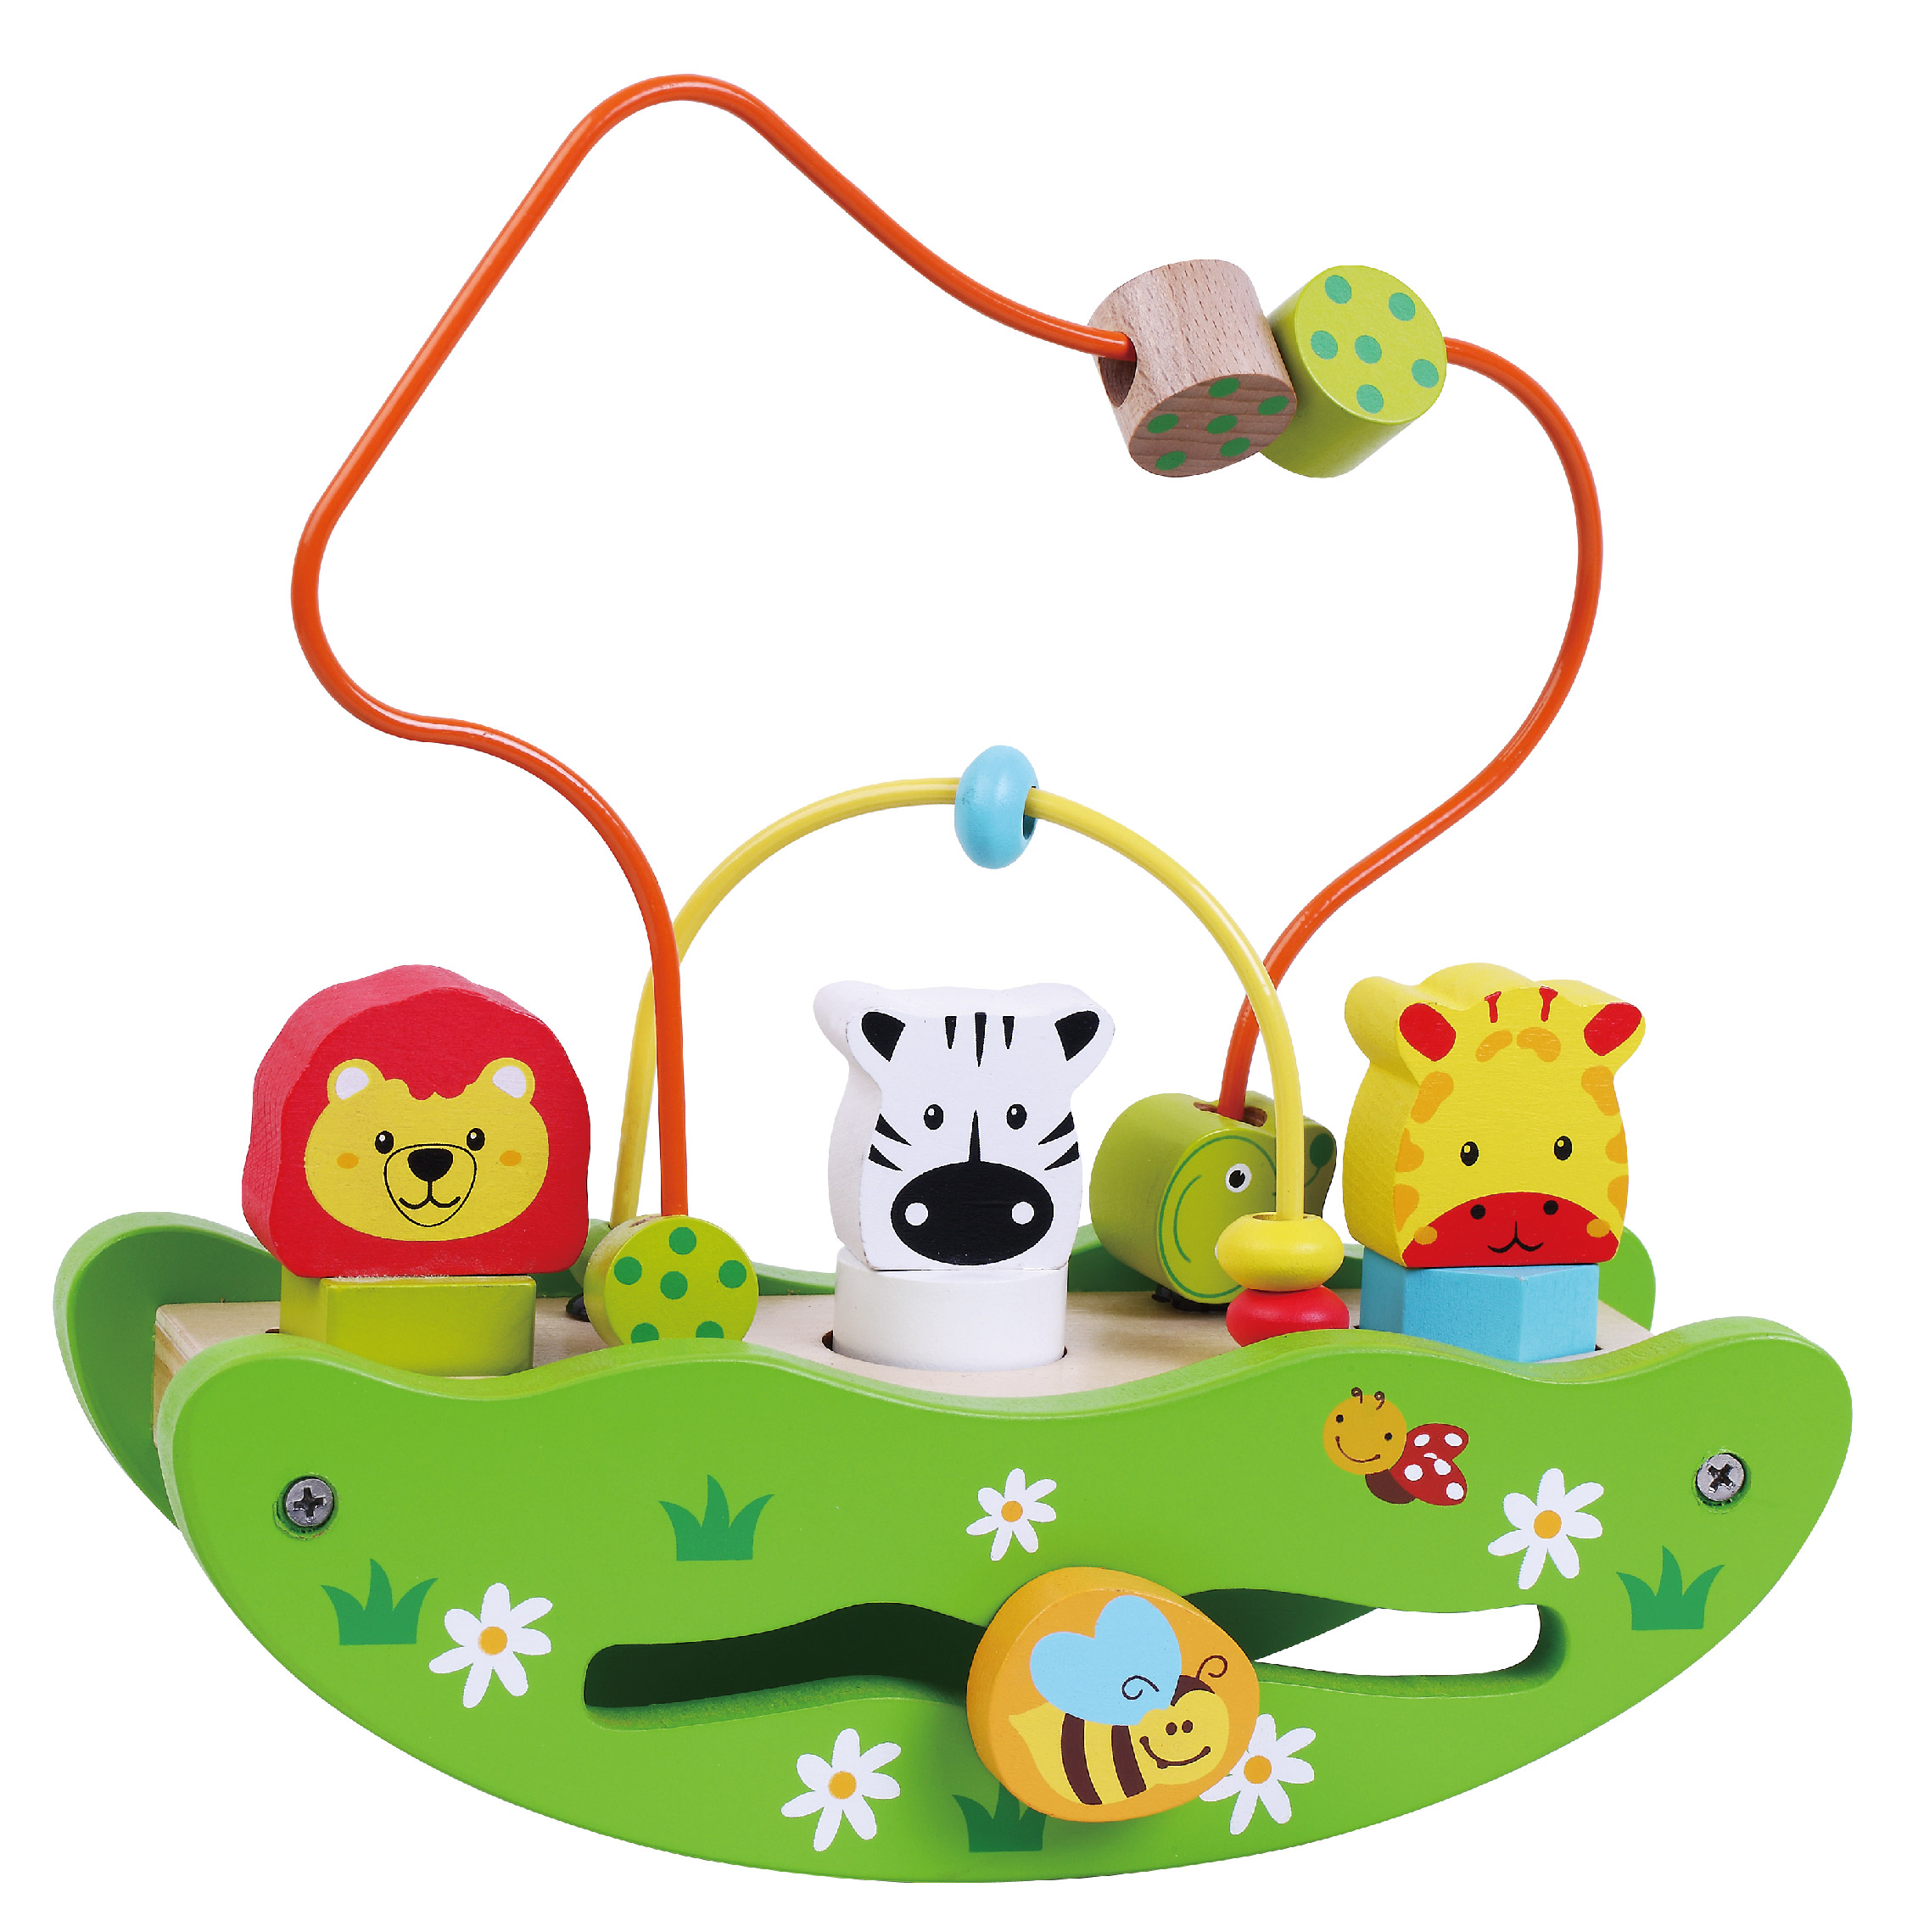 Bicycle clipart toy boat  animal Wooden Children Wooden